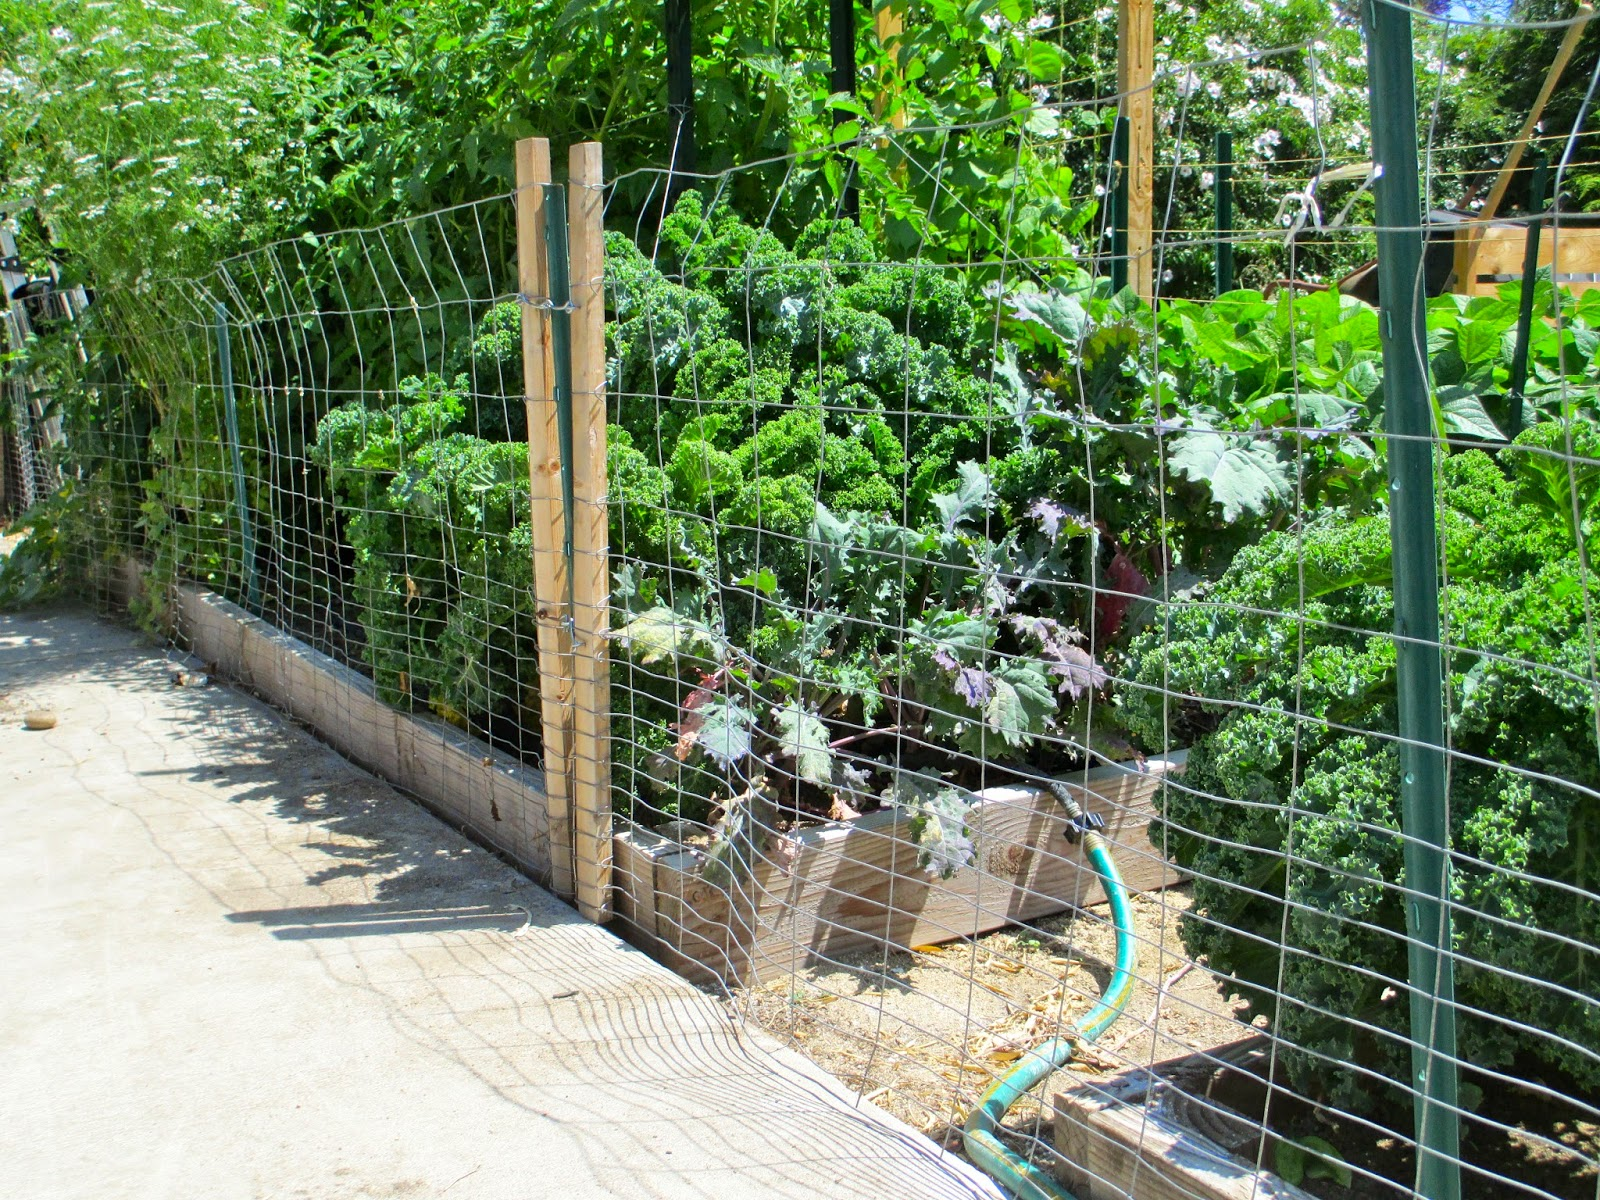 Fence And Simple Gates   Removes Easily For Gardening   Andieu0027s Way